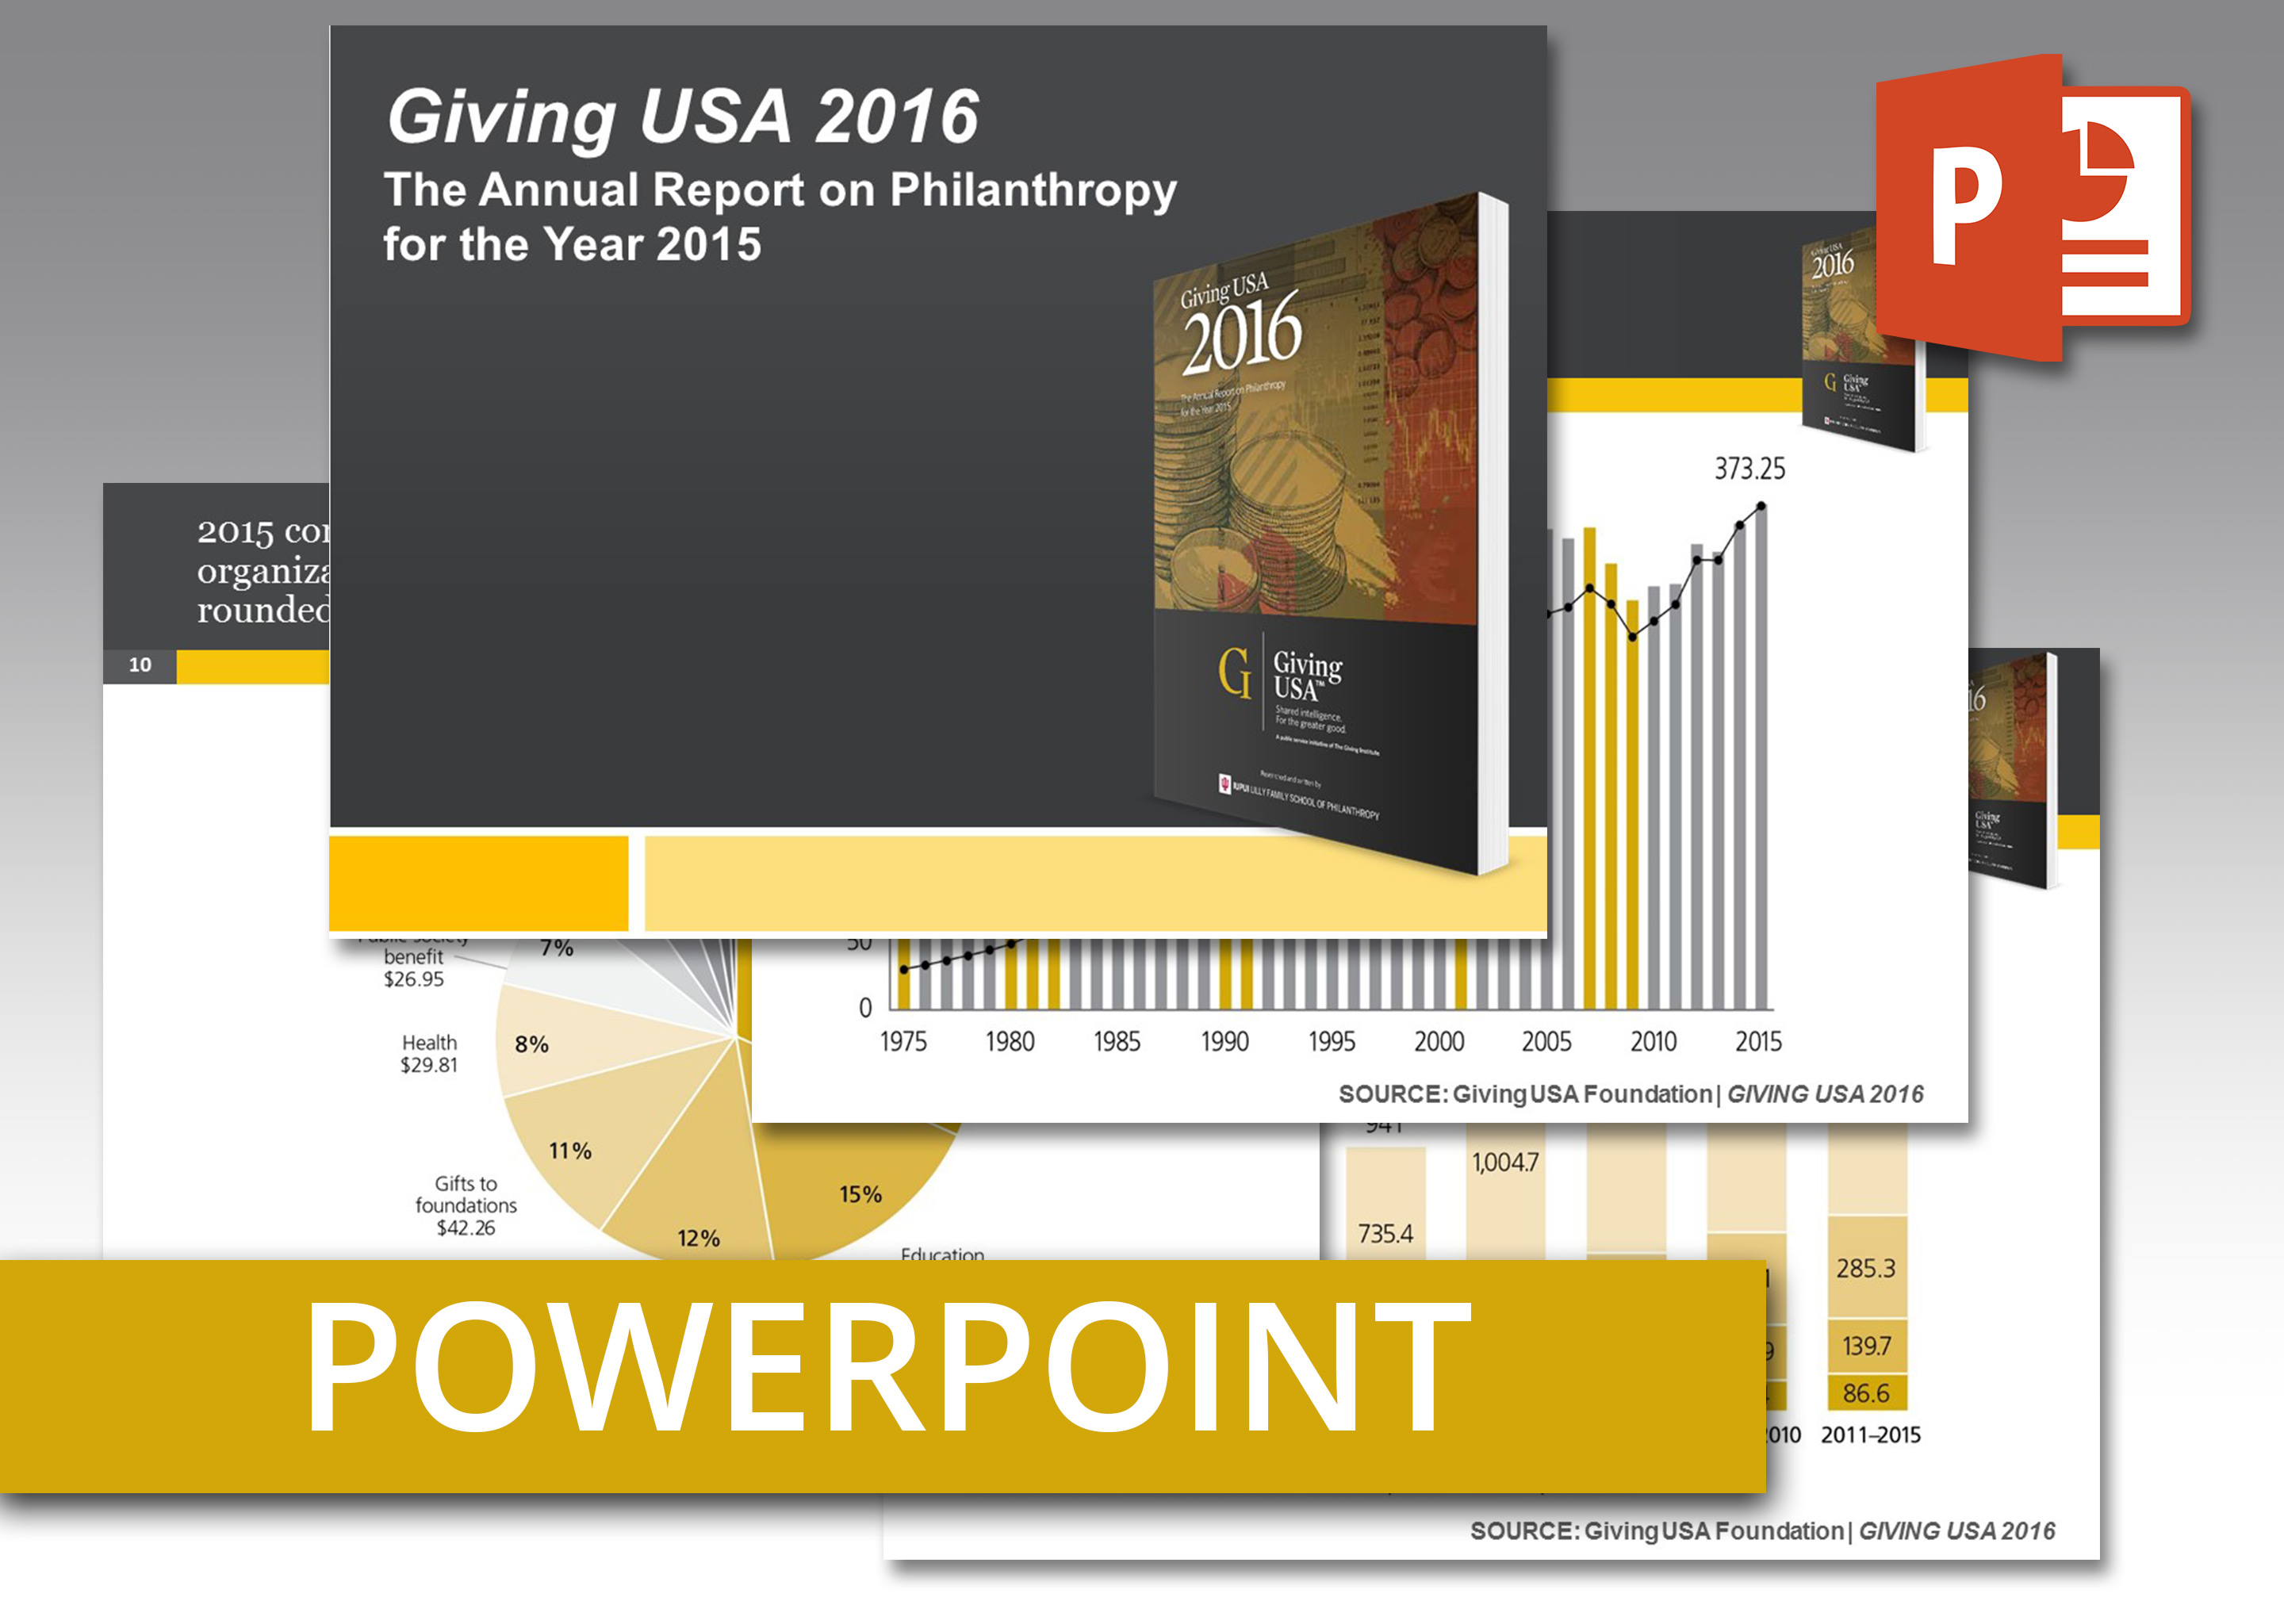 Usdgus  Mesmerizing Giving Usa  Powerpoint An Easytouse Presentation Of Report  With Goodlooking Giving Usa  Powerpoint An Easytouse Presentation Of Report Findings Including Talking Points With Astonishing How To Create Powerpoint Theme Also Teaching Powerpoint Ks In Addition Microsoft Powerpoint Free Torrent And Number Powerpoint Slides As Well As Powerpoint Presentation Hybridoma Technology Additionally Add Font To Powerpoint From Givingusaorg With Usdgus  Goodlooking Giving Usa  Powerpoint An Easytouse Presentation Of Report  With Astonishing Giving Usa  Powerpoint An Easytouse Presentation Of Report Findings Including Talking Points And Mesmerizing How To Create Powerpoint Theme Also Teaching Powerpoint Ks In Addition Microsoft Powerpoint Free Torrent From Givingusaorg